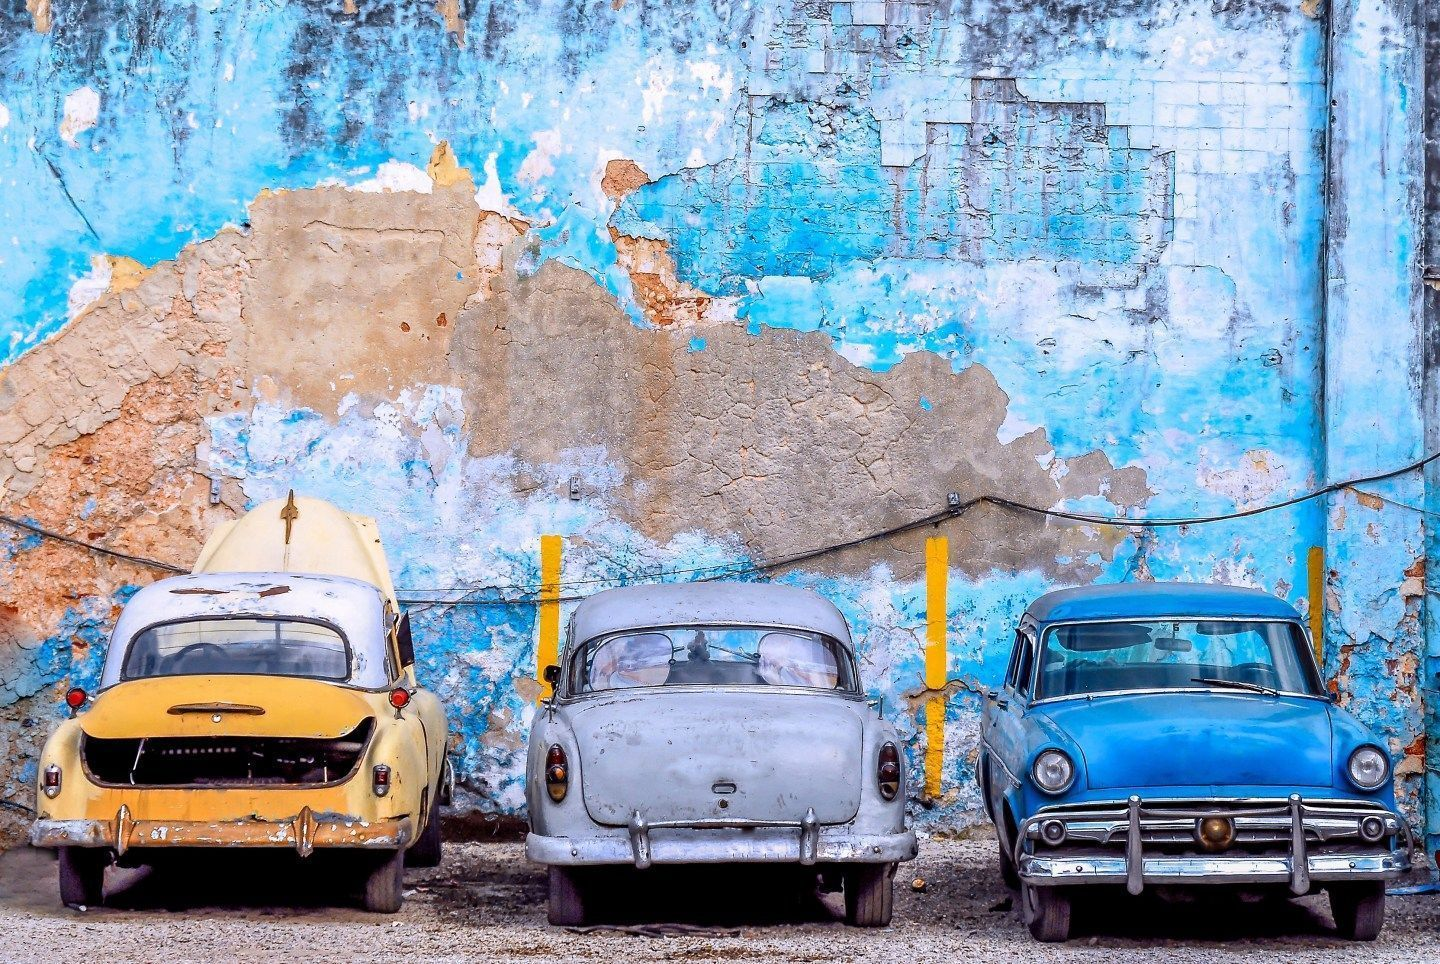 10 Easy Steps For Americans Visiting Cuba On A Cruise #visitcuba 10 Easy Steps For Americans Visiting Cuba On A Cruise #visitcuba 10 Easy Steps For Americans Visiting Cuba On A Cruise #visitcuba 10 Easy Steps For Americans Visiting Cuba On A Cruise #visitcuba 10 Easy Steps For Americans Visiting Cuba On A Cruise #visitcuba 10 Easy Steps For Americans Visiting Cuba On A Cruise #visitcuba 10 Easy Steps For Americans Visiting Cuba On A Cruise #visitcuba 10 Easy Steps For Americans Visiting Cuba On #visitcuba